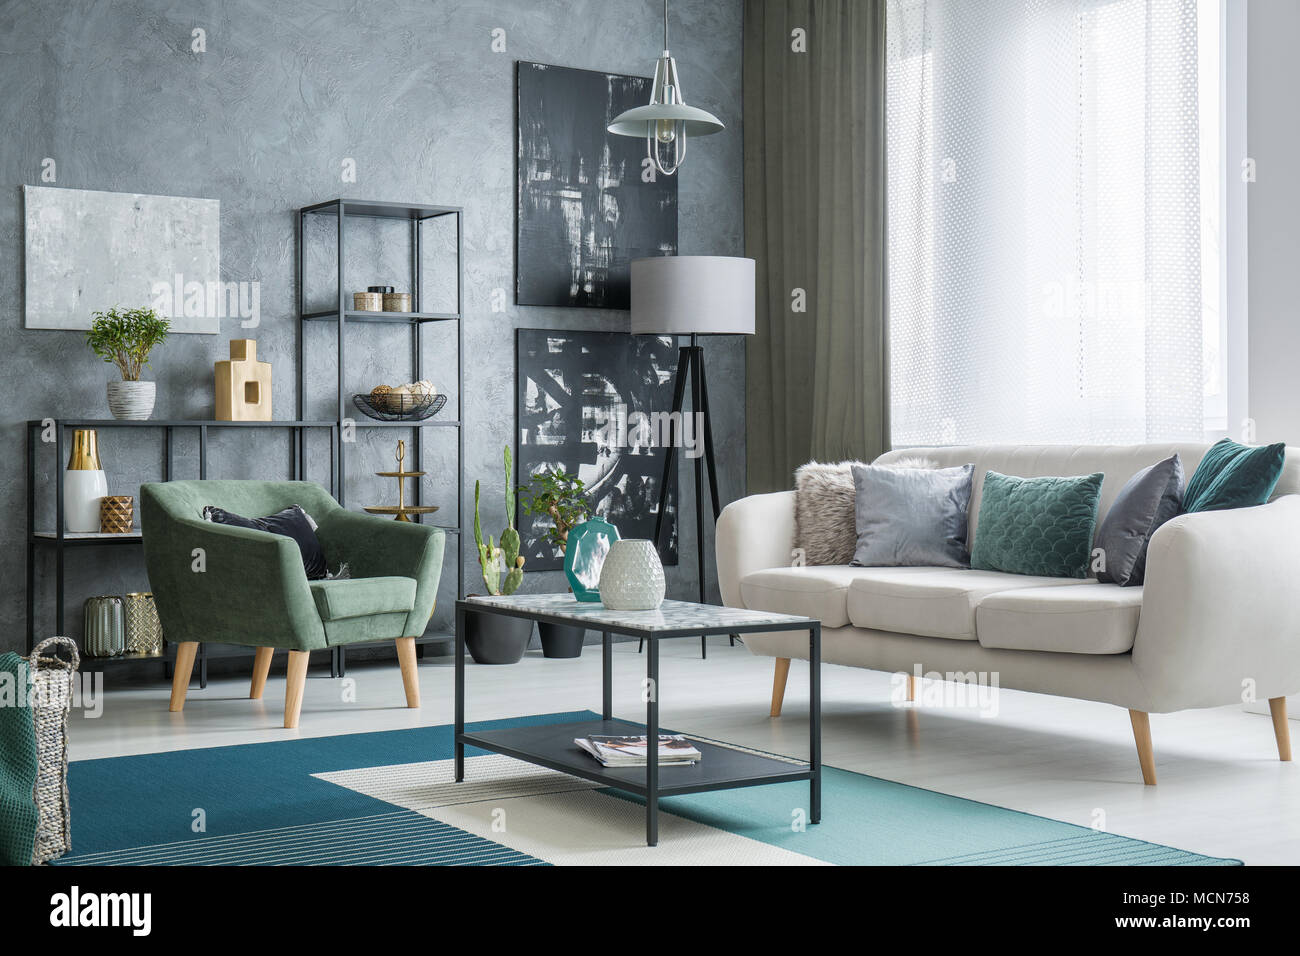 Two Dark Posters Hanging On A Grey Wall In Industrial Living Room Interior  With Lamps, Bright Couch And Table Standing On A Carpet